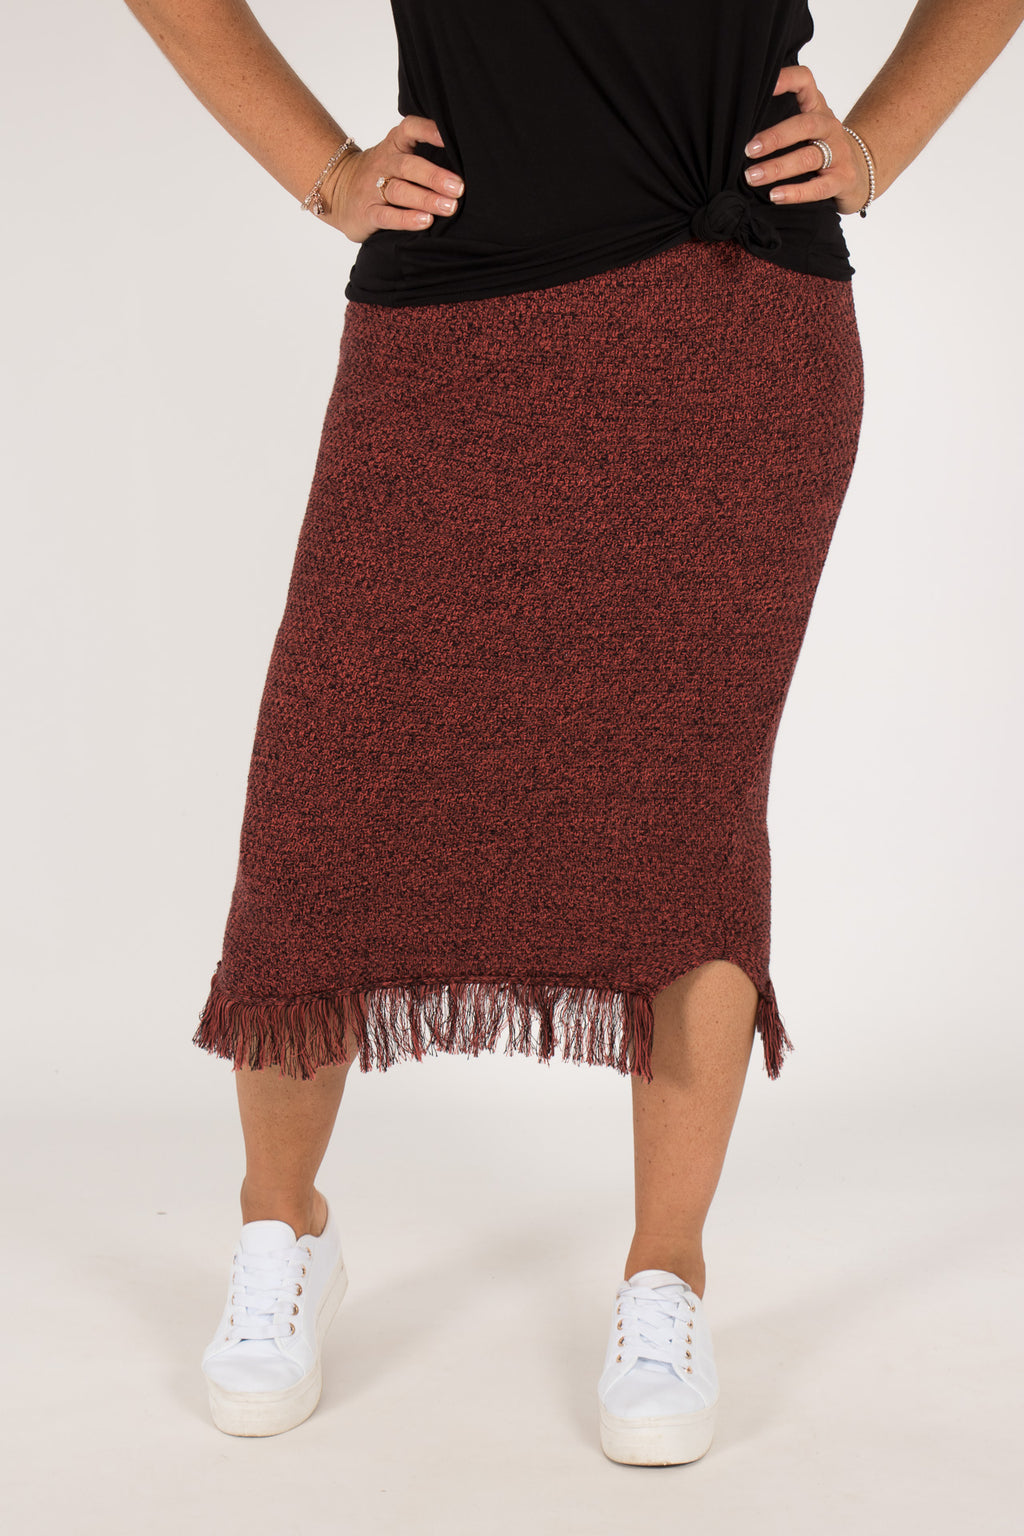 Karanda Knit Skirt in Rust/Black